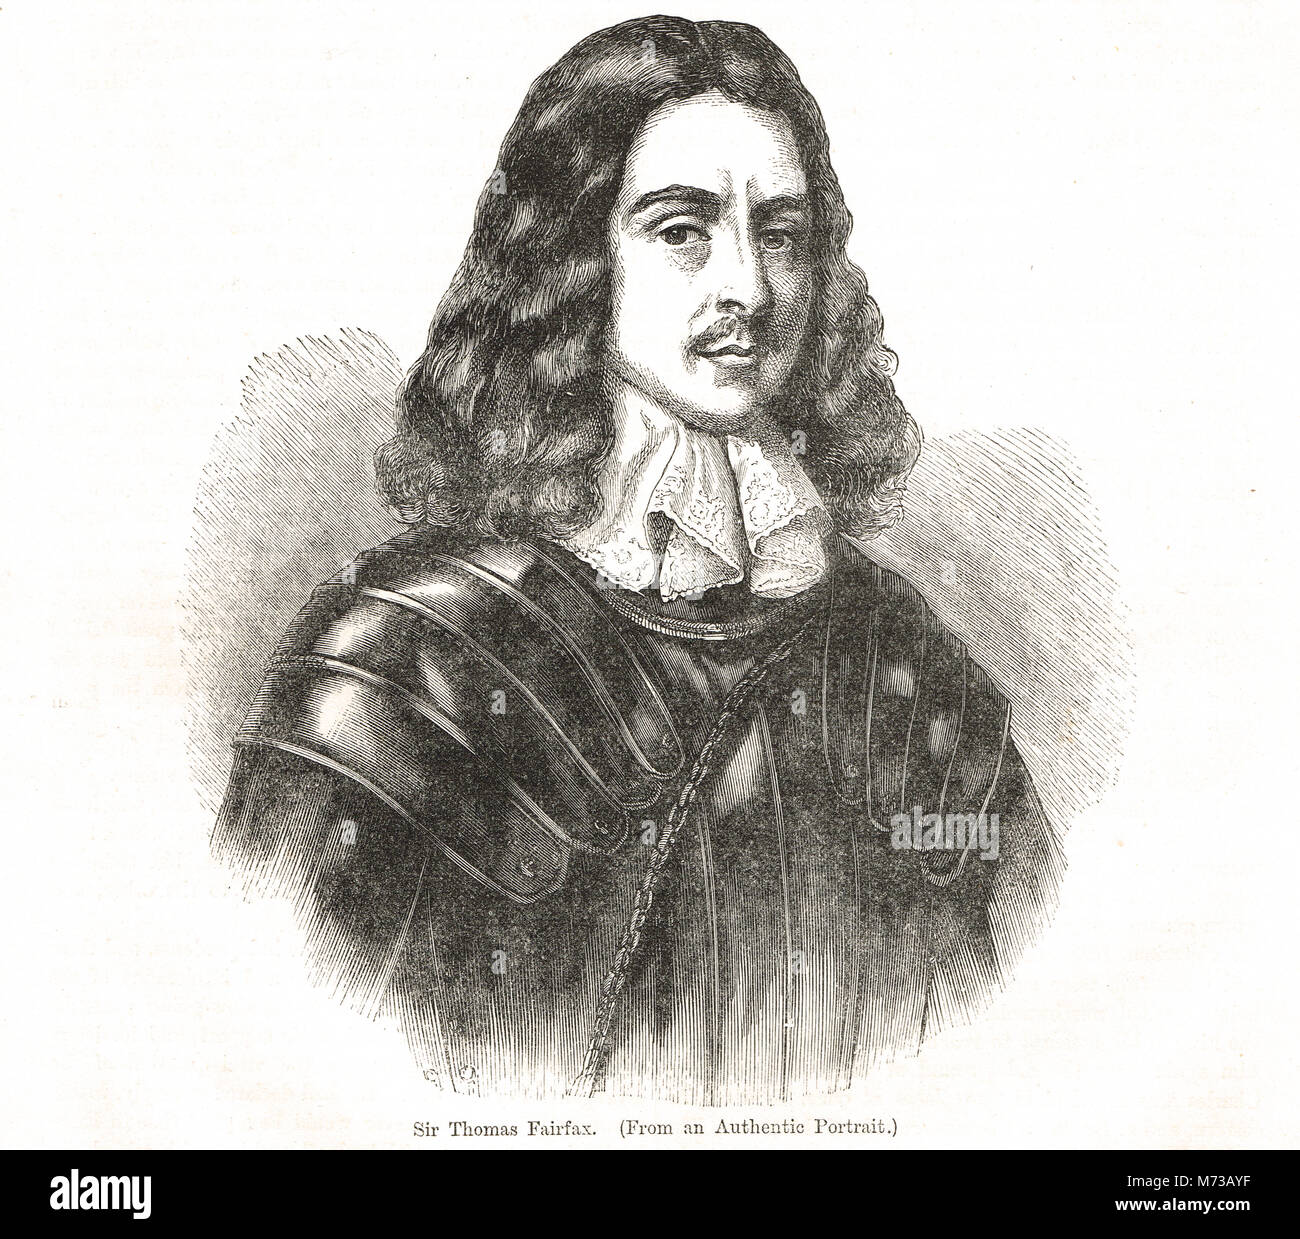 Thomas Fairfax, (1612–1671), Parliamentary commander-in-chief during the English Civil War - Stock Image